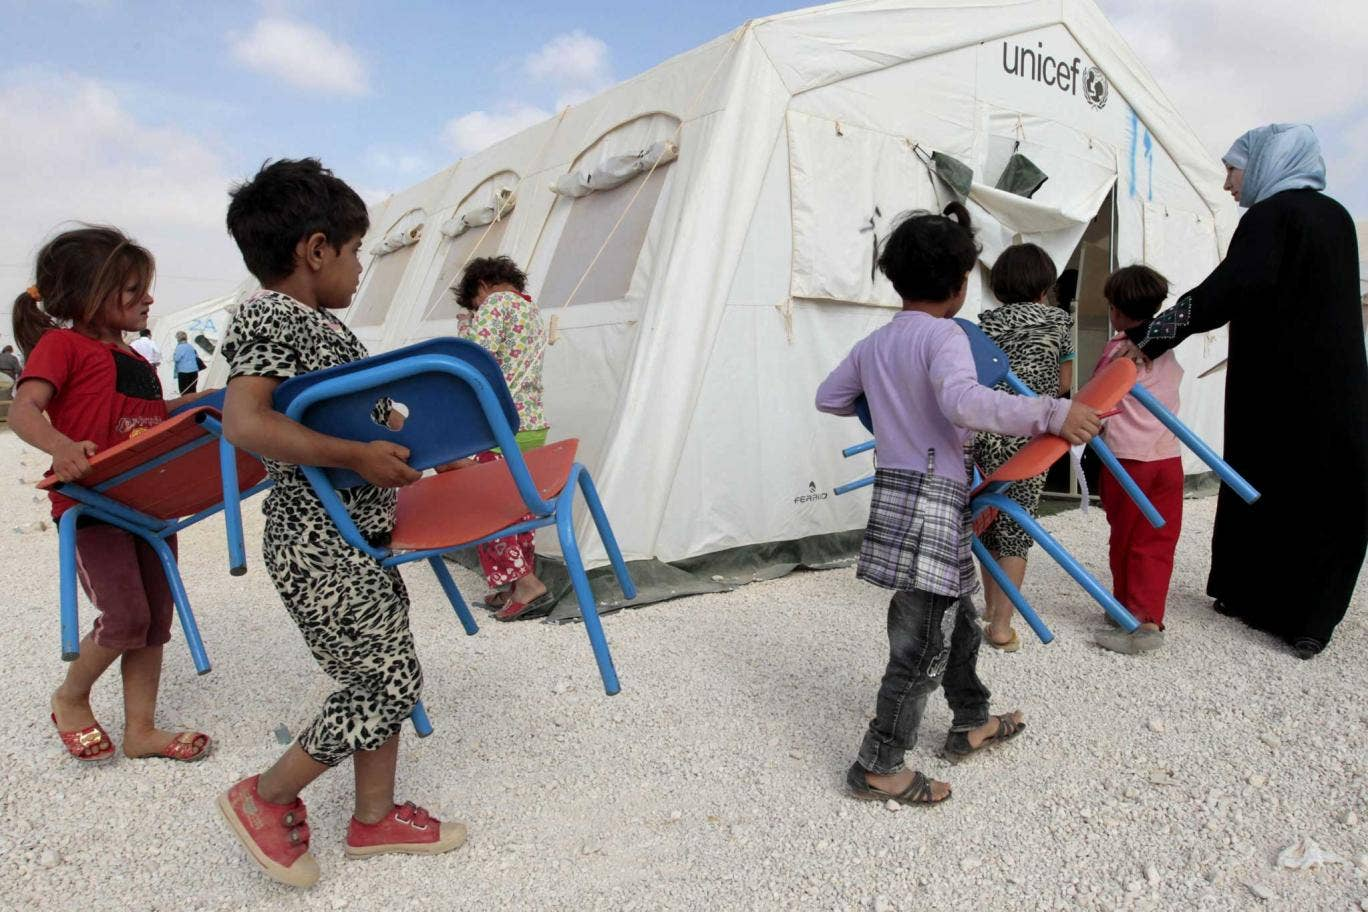 Syrian refugees would be getting an education if the West actually delivered on its pledges